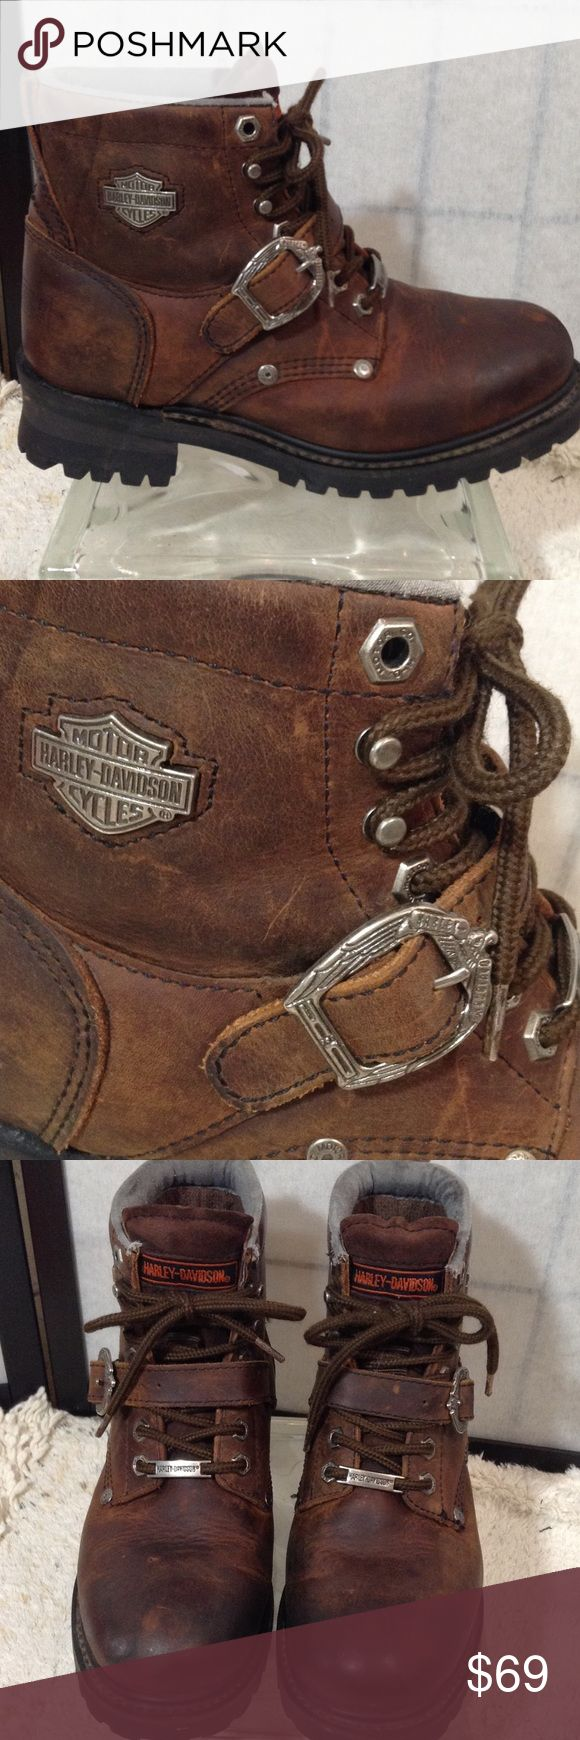 """Harley Davidson brown leather boots Gorgeous distressed brown leather with usual HD silver - buckle, studs, side logo, lace plate; strap and buckle over lace up front; minor fray at cuffs - see pic; good condition with minor scuffing; great boots! 1.75"""" heel; 5"""" shaft; size 9/40 Harley-Davidson Shoes Combat & Moto Boots"""